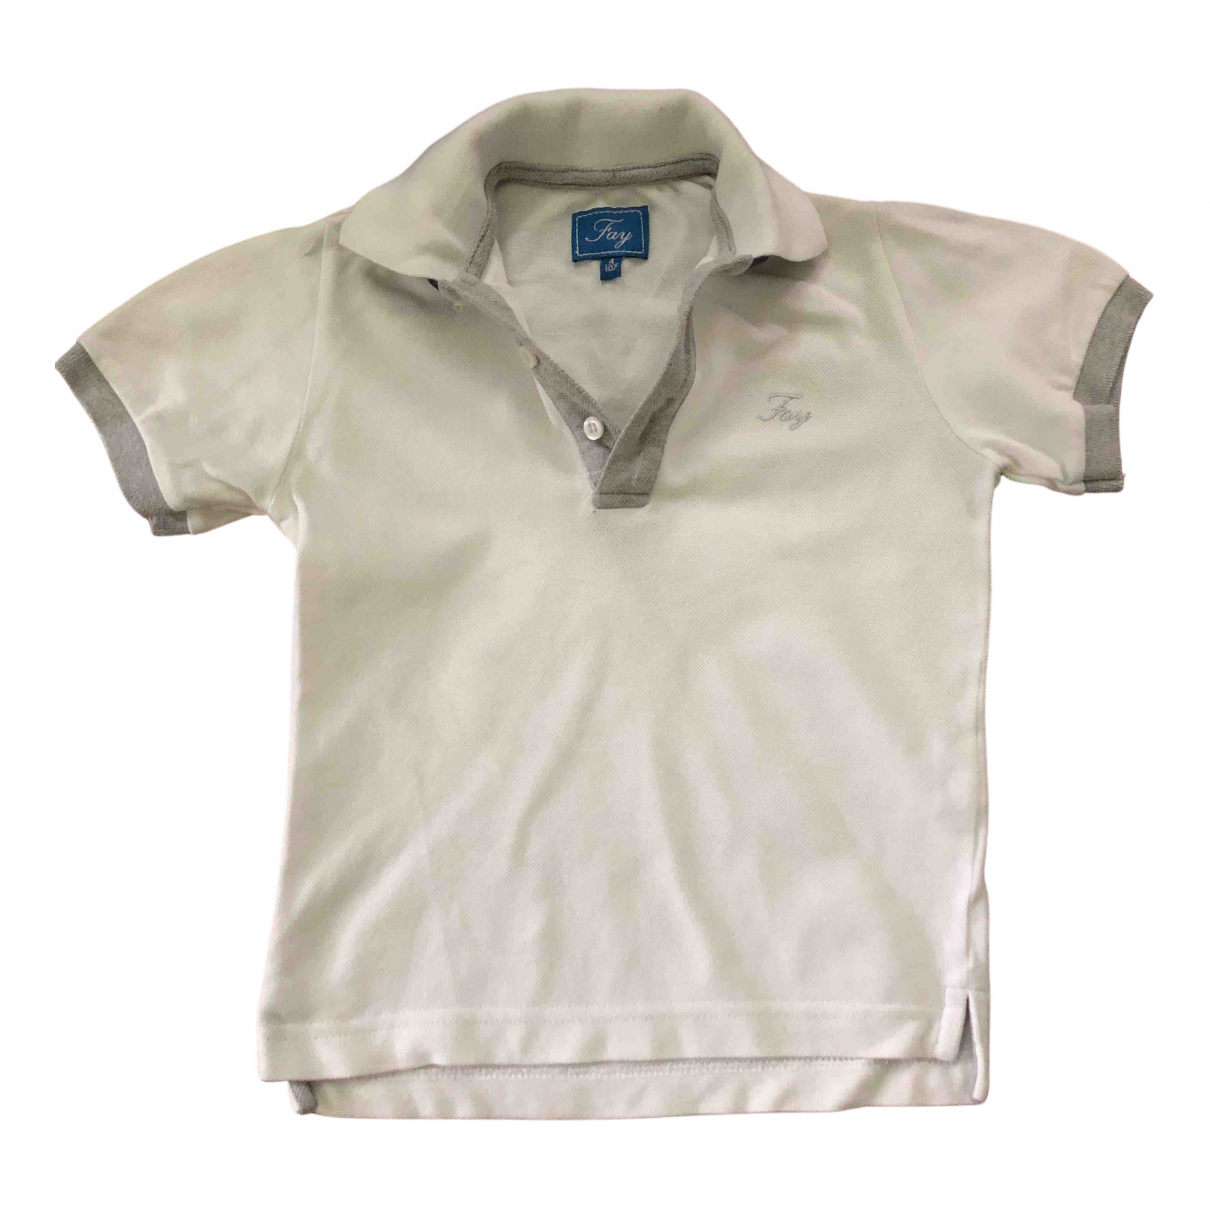 Fay N White Cotton  top for Kids 4 years - up to 102cm FR